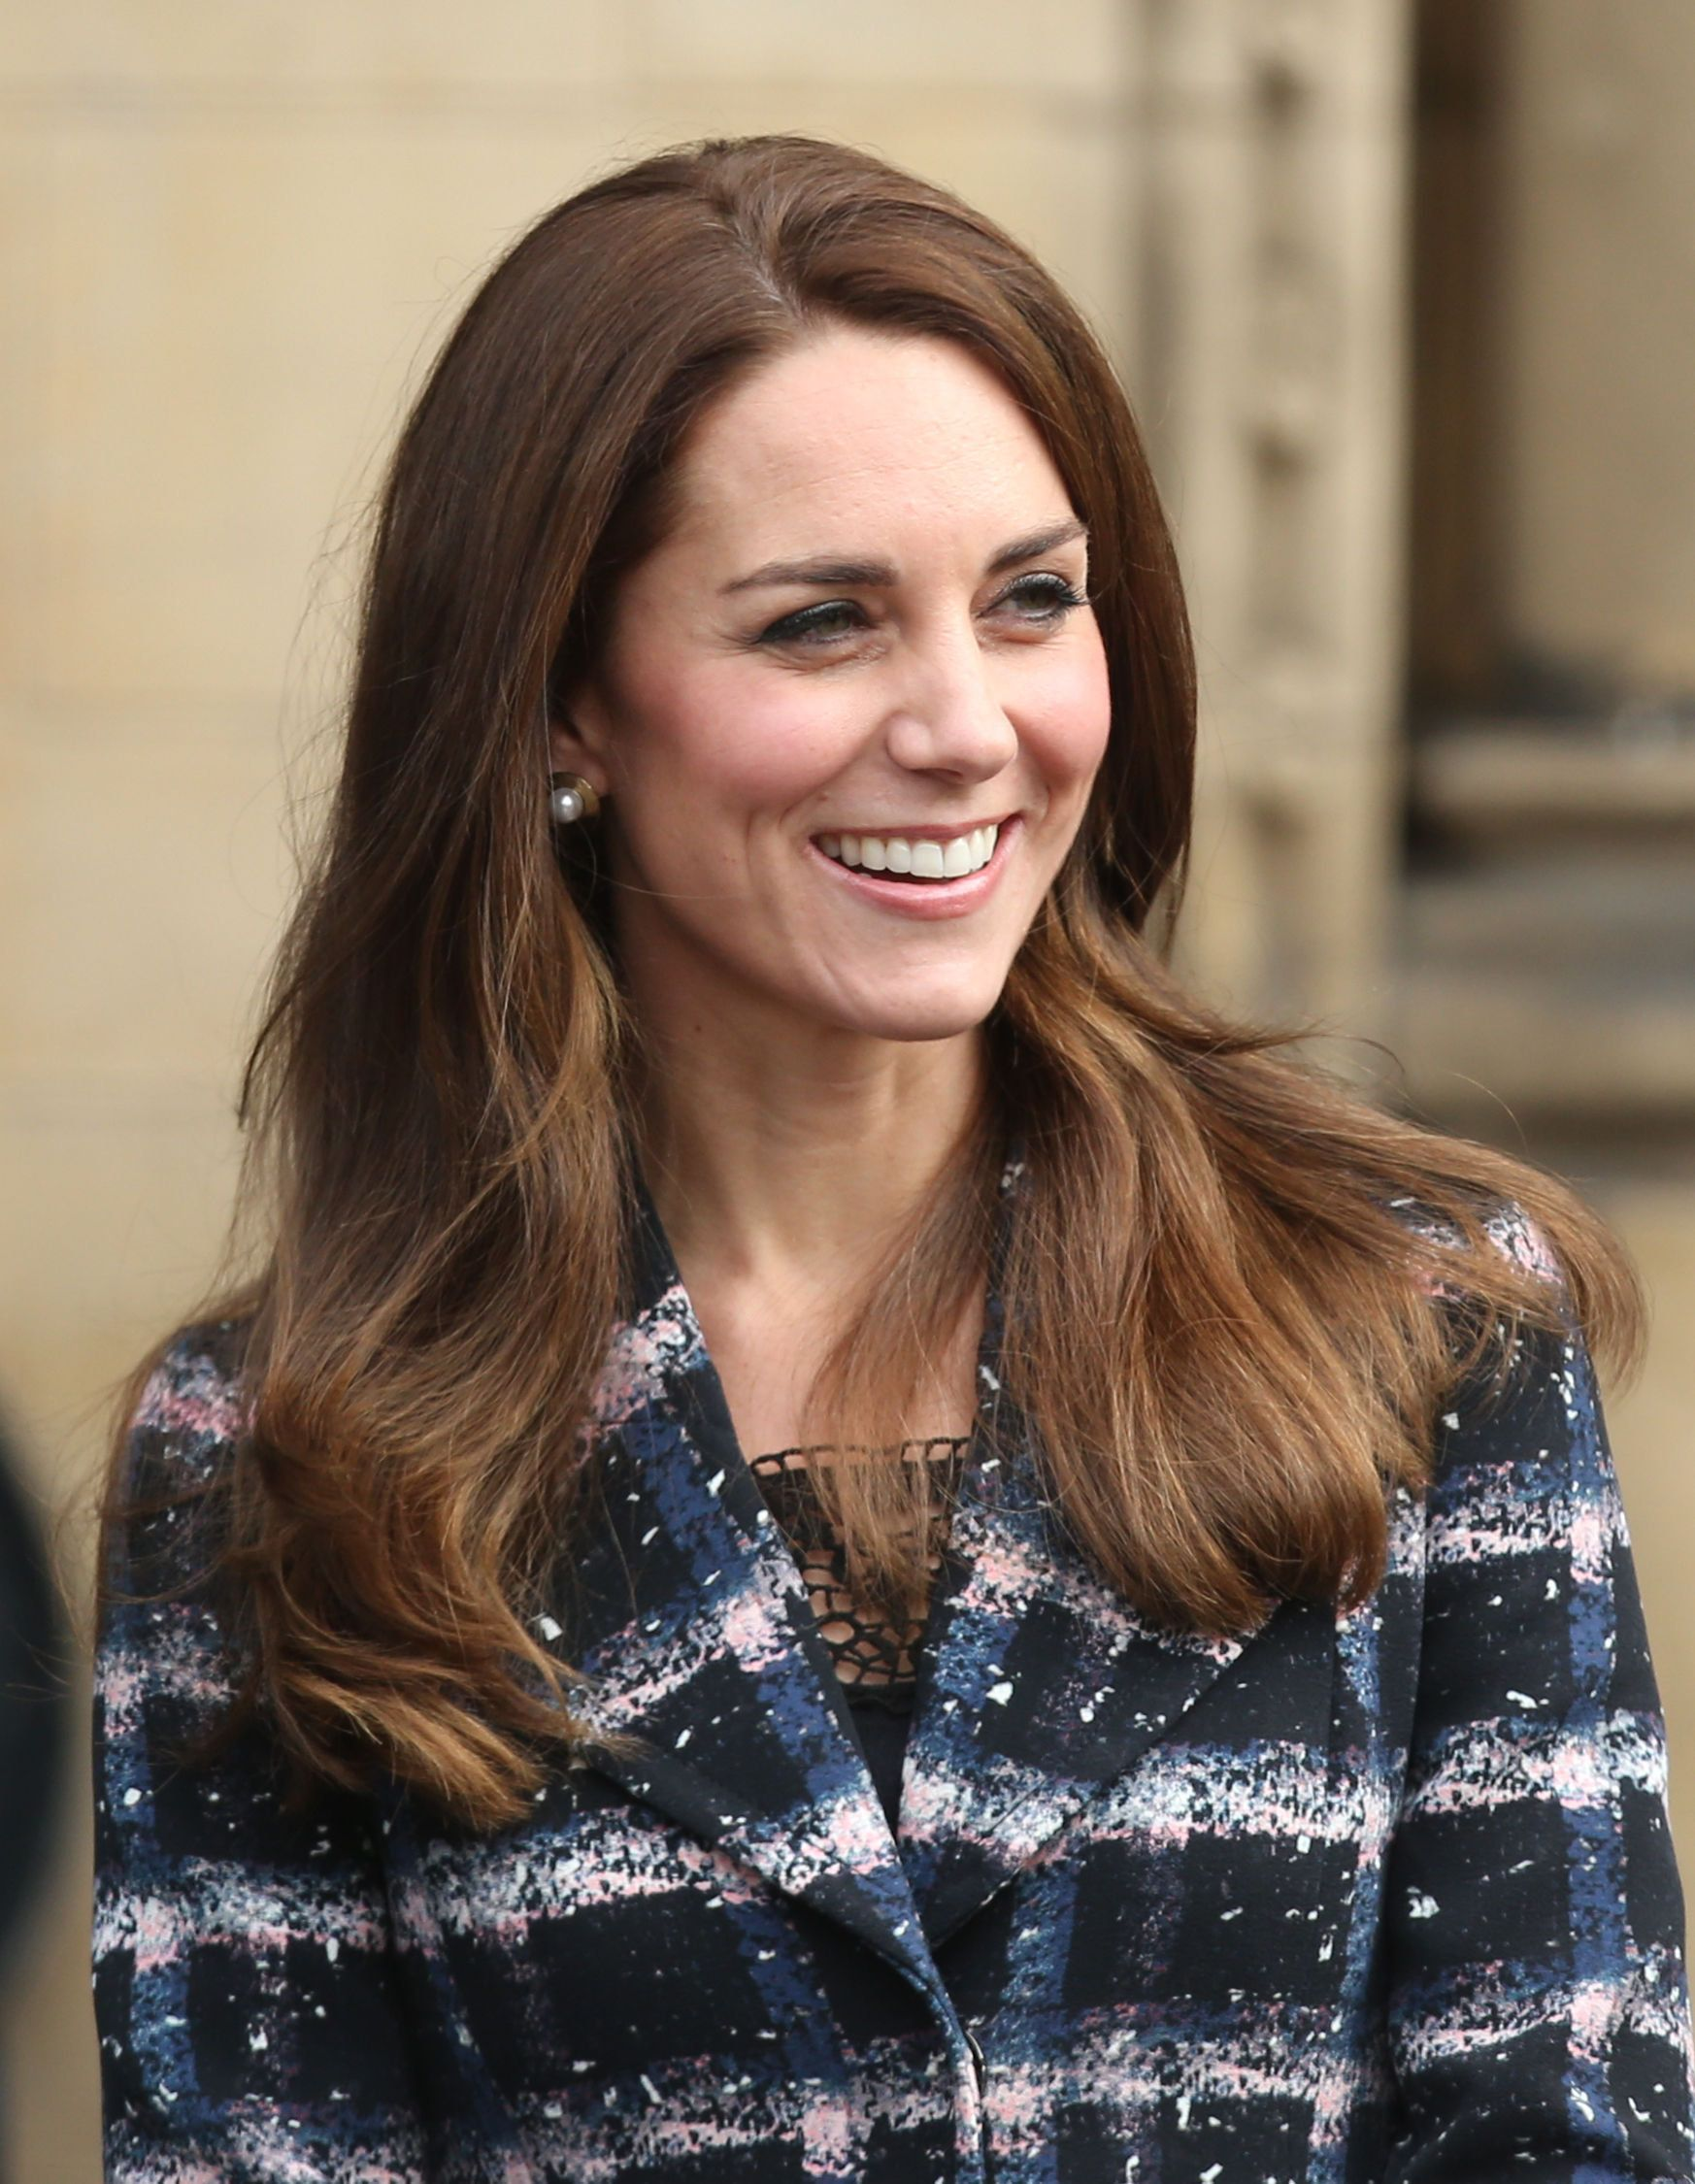 Duchess of Cambridge Kate Middleton has opened up about her late grandmother's work cracking enemy codes for the British gove